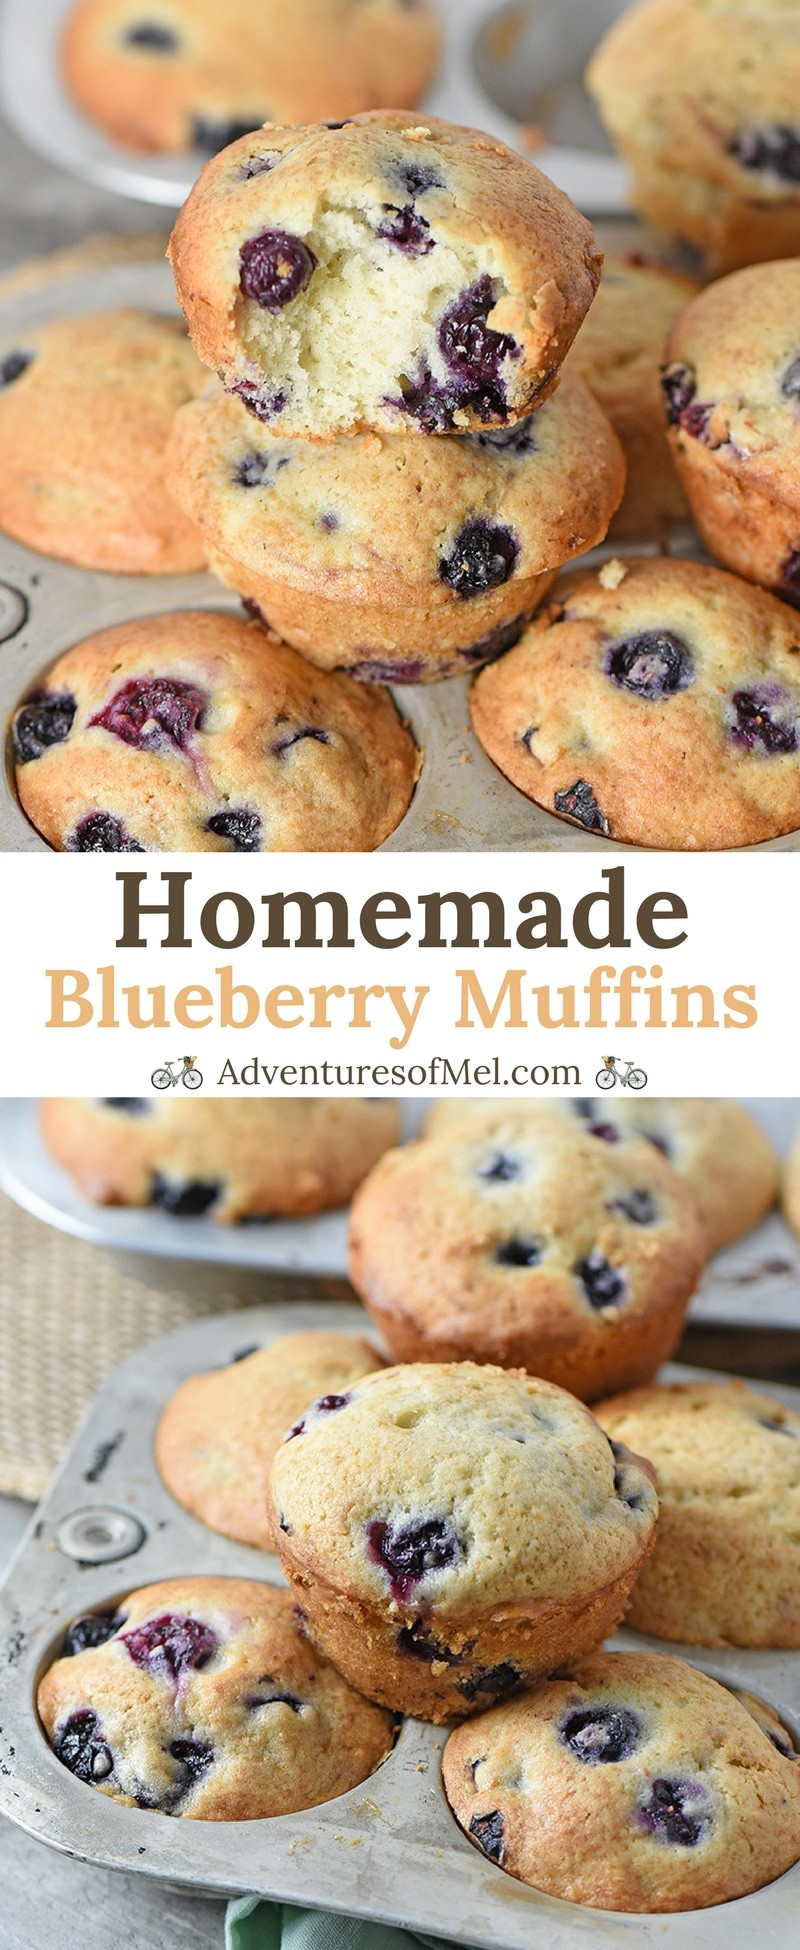 Homemade Blueberry Muffins from scratch are a breakfast sweet treat my boys really enjoy. Made with simple ingredients like butter, sour cream, and blueberries, this recipe is quick and easy to make. And the muffins are moist and delicious!